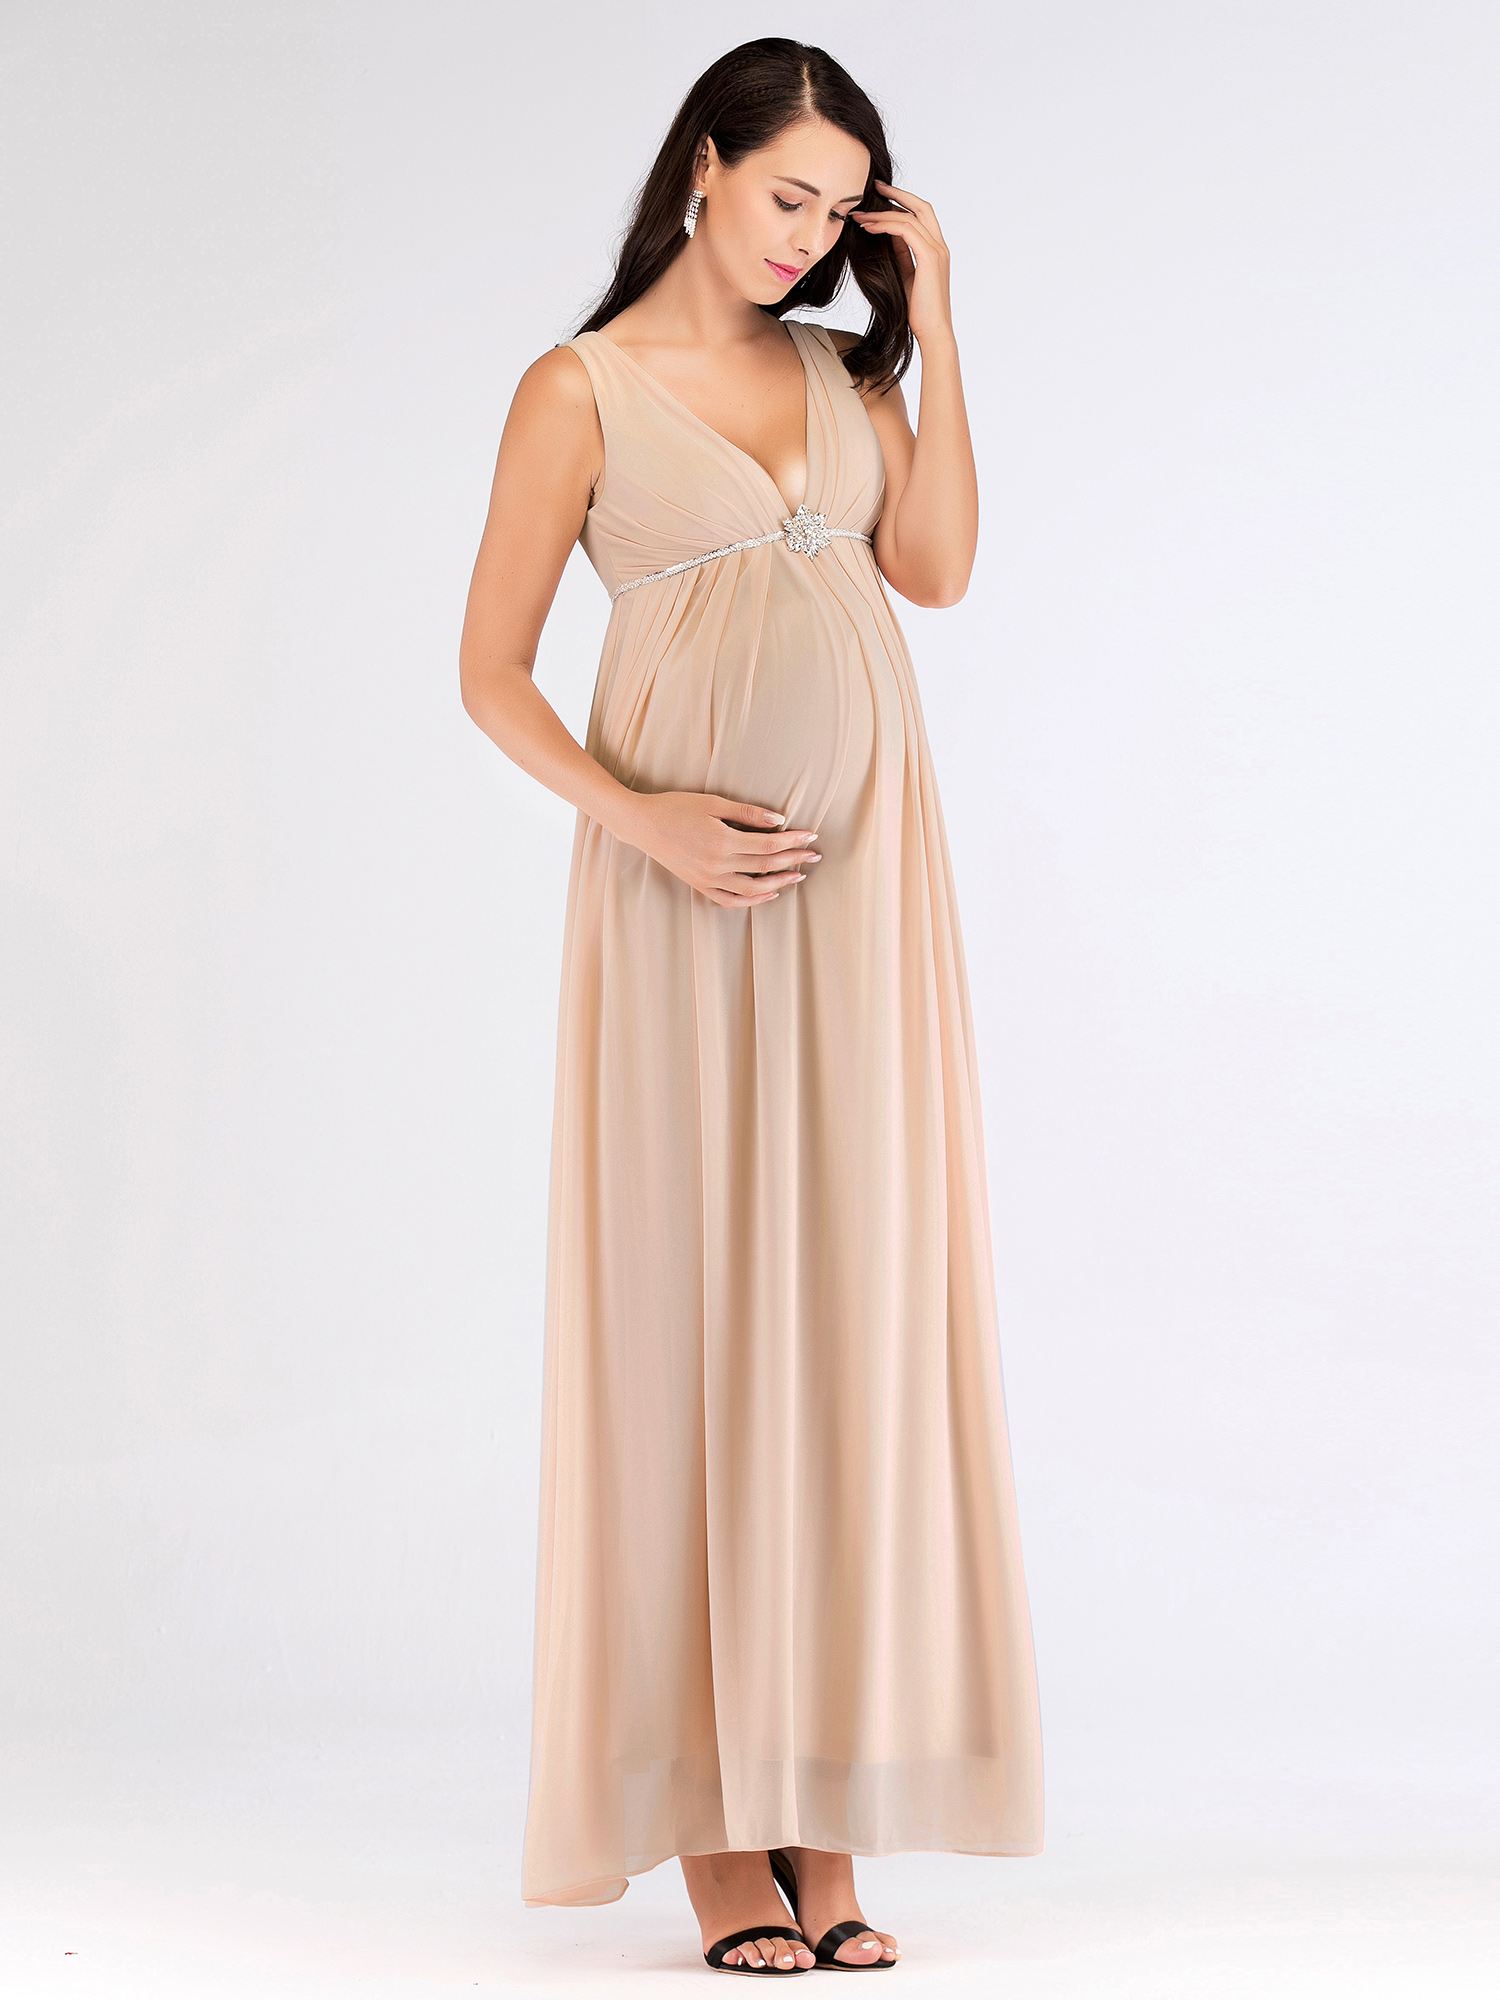 d61d7d1c7822 Ever-pretty - Ever-Pretty Womens Long Bridesmaid Wedding Party Dress  Pregnancy Baby Shower Photoshoot Gown for Women 07387 US 8 - Walmart.com